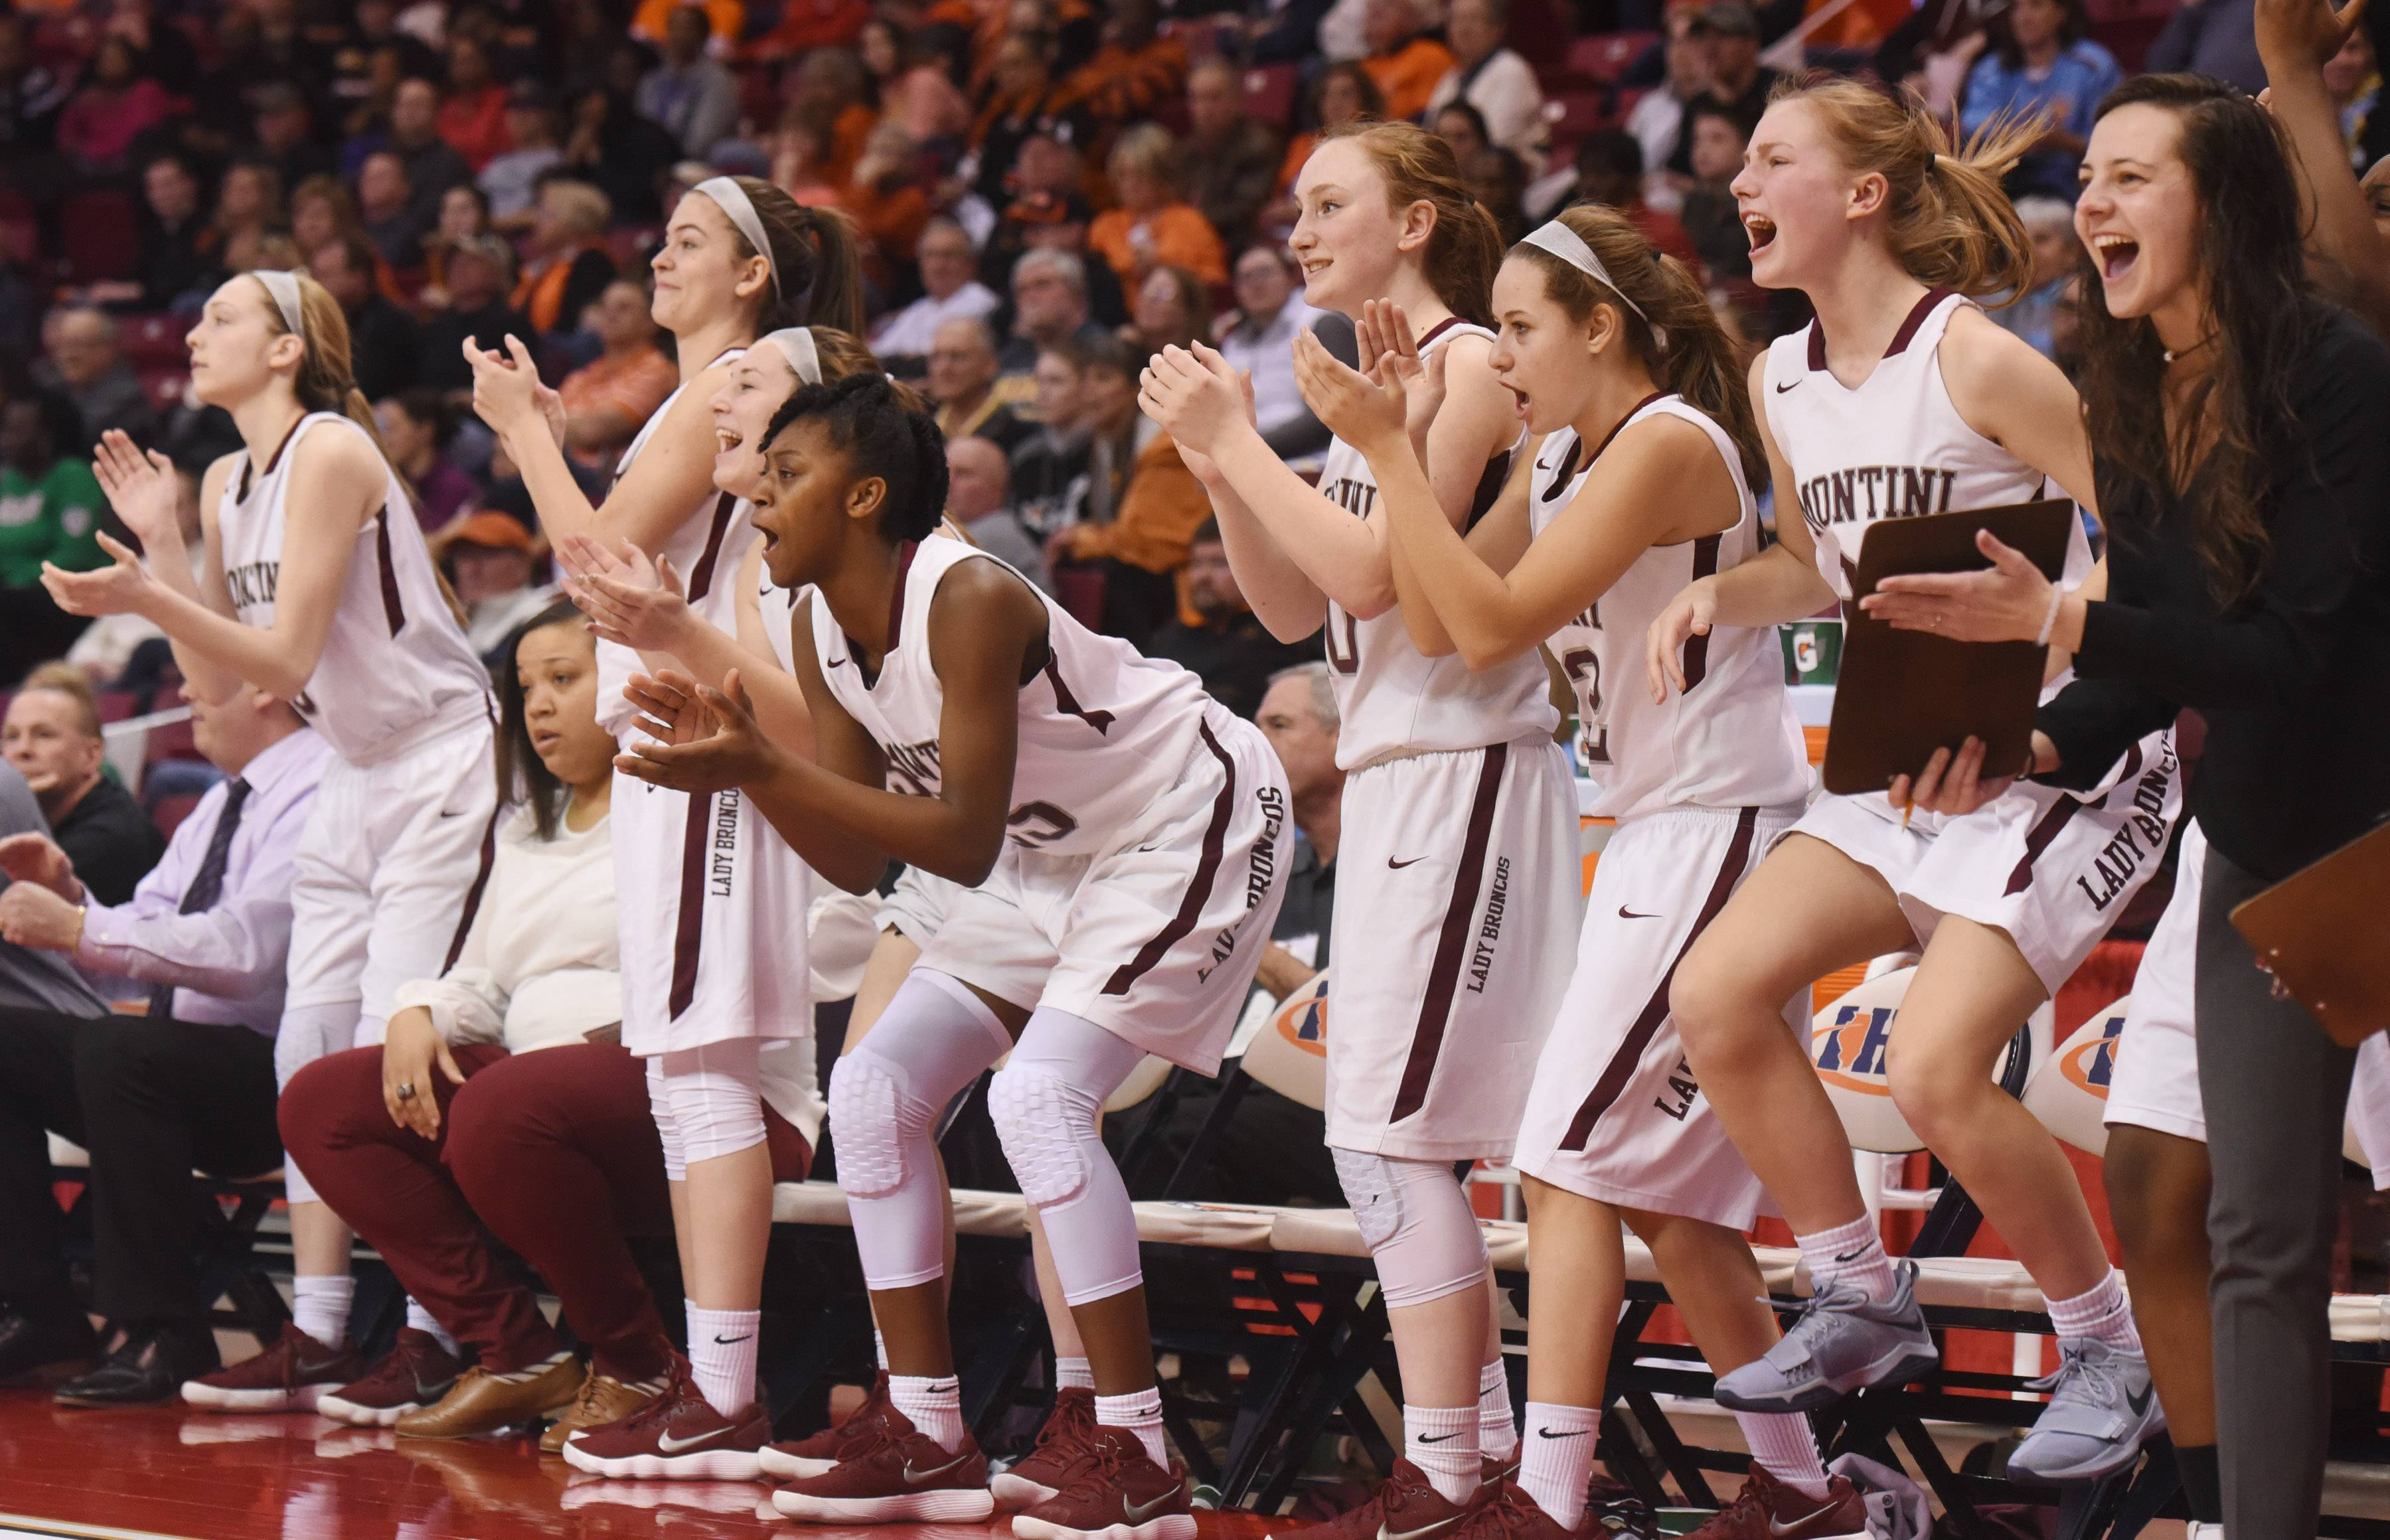 Montini returning to state championship game